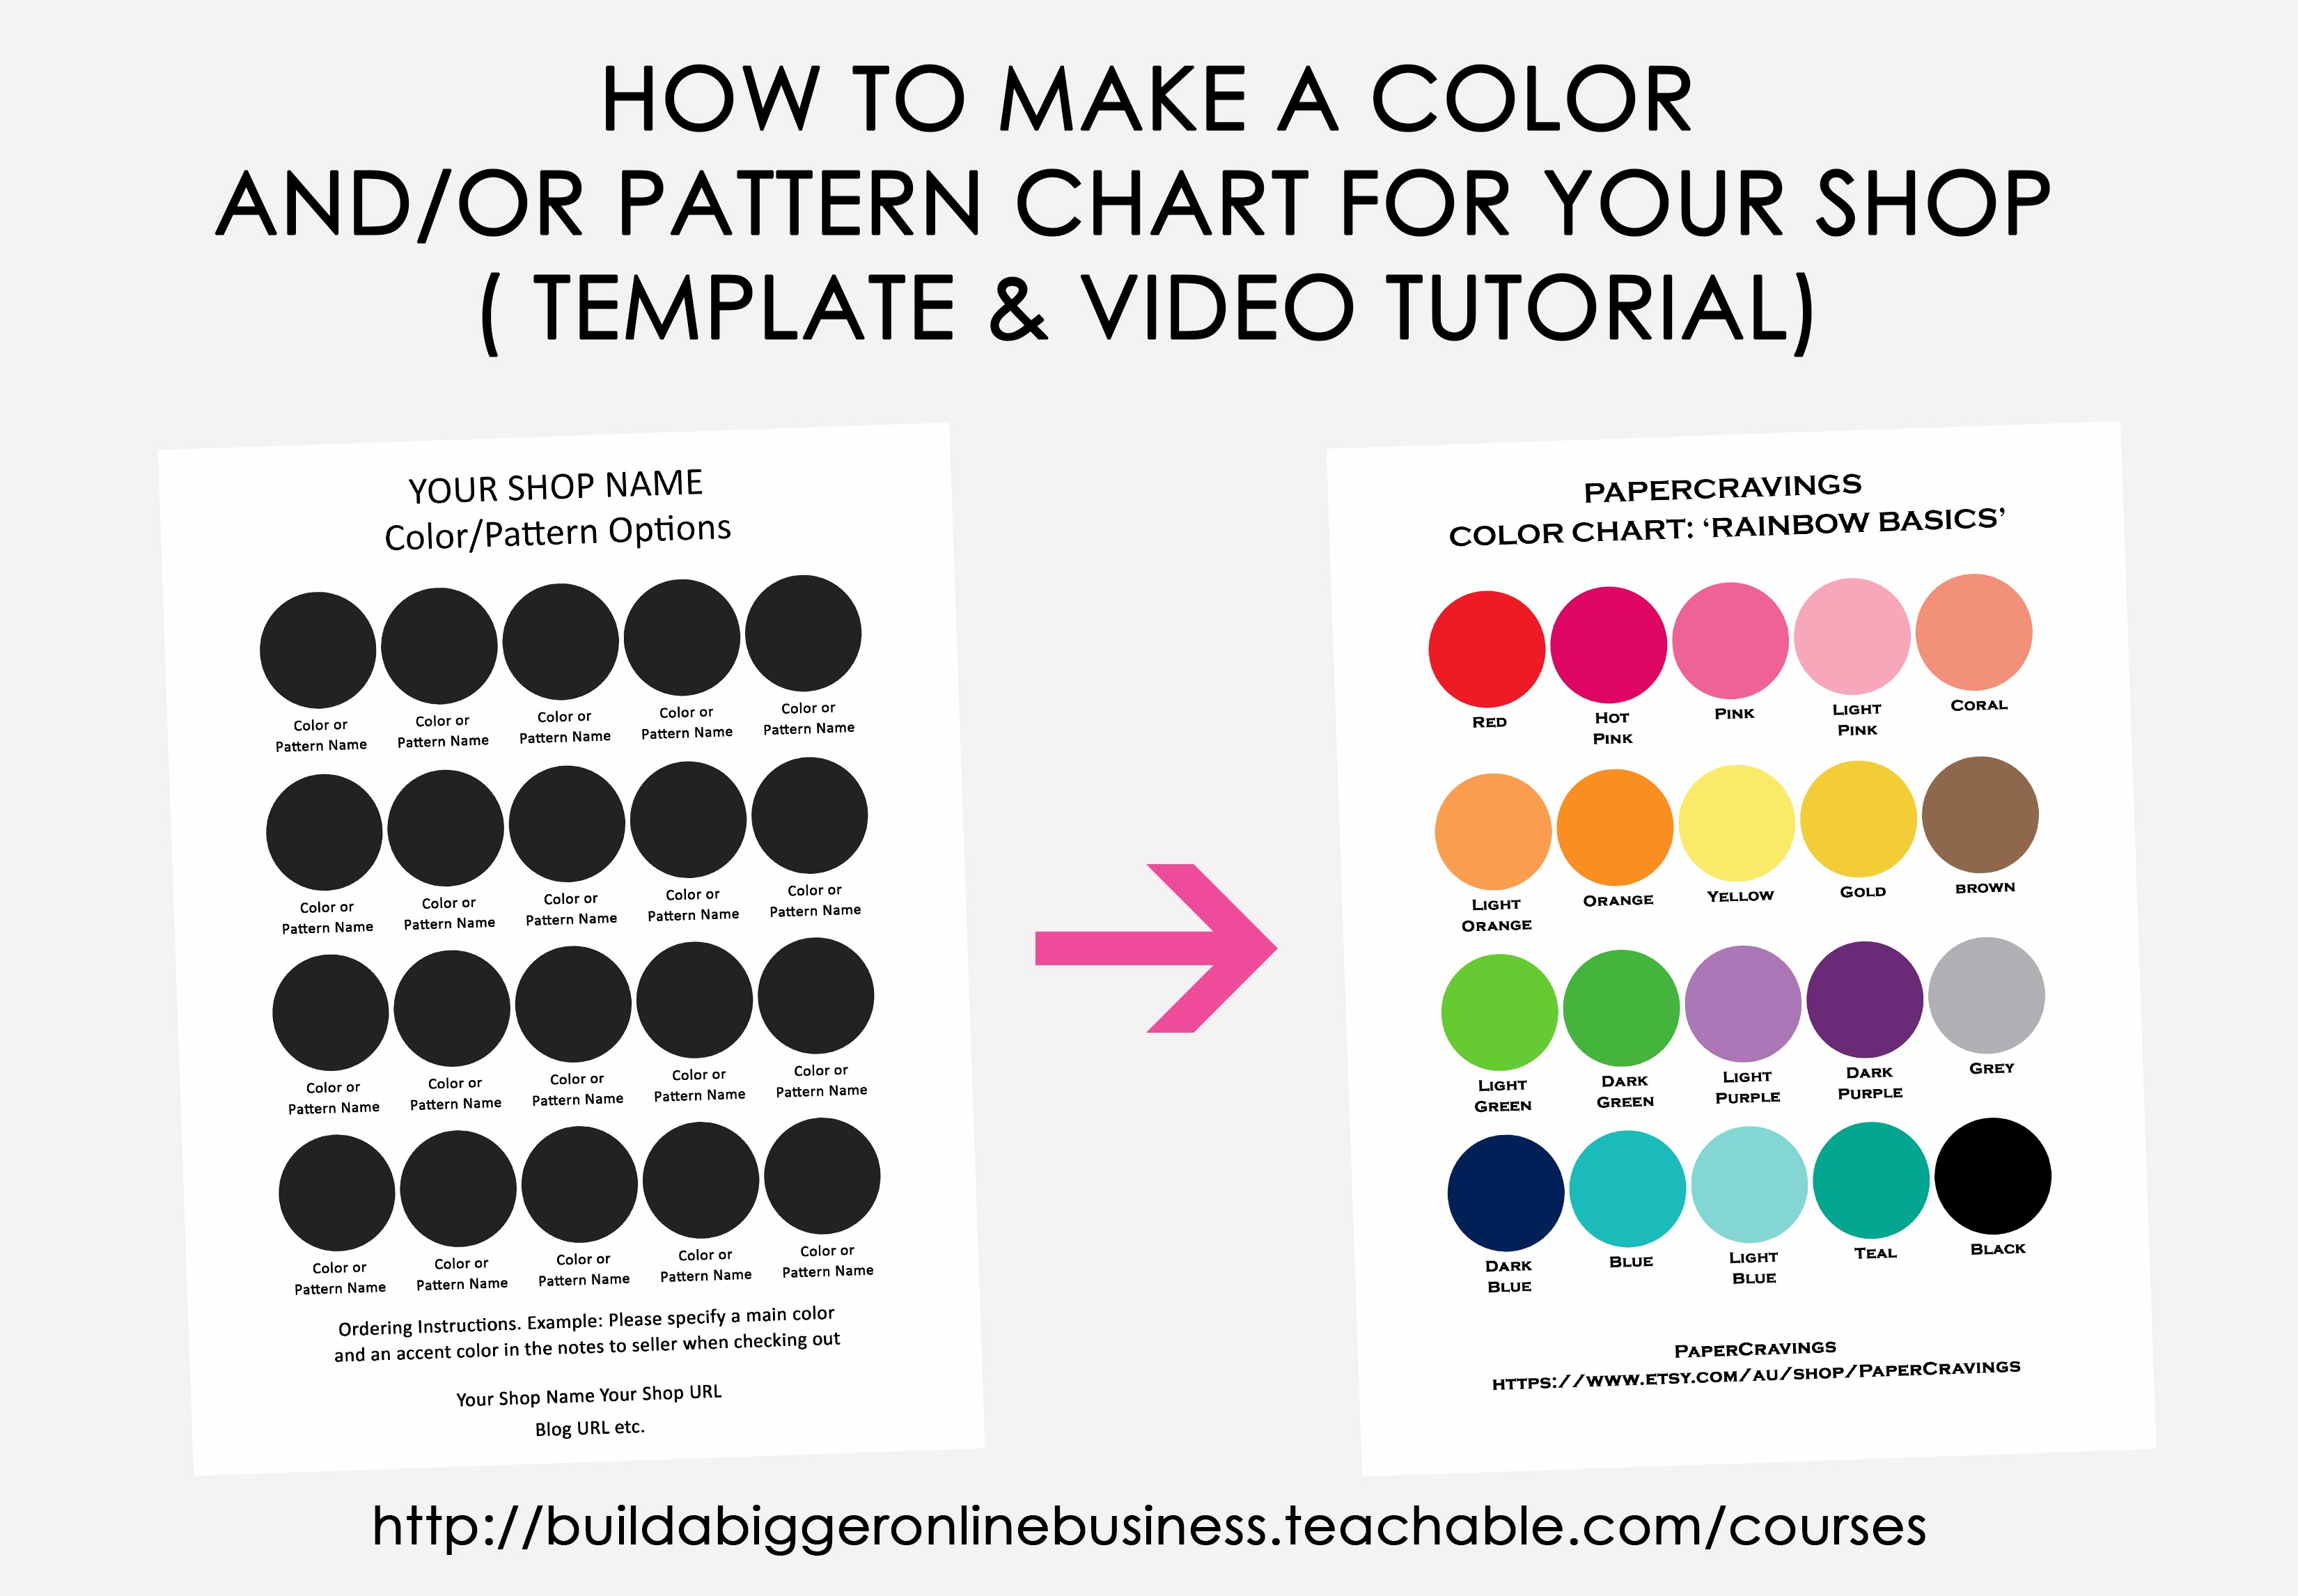 How to make a color chart in Photoshop | Build a Bigger Online